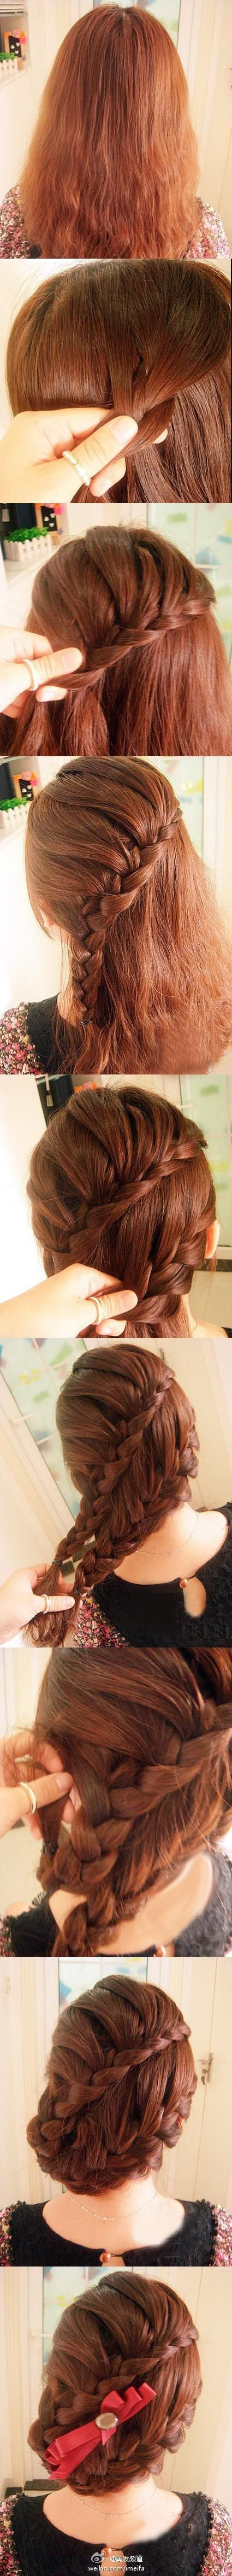 cute.  Great tutorial.: French Braids, Braids Hairstyles, Braids Updo, Long Hair, Double Braids, Medium Hair, Braids Style, Hair Style, Side Braids